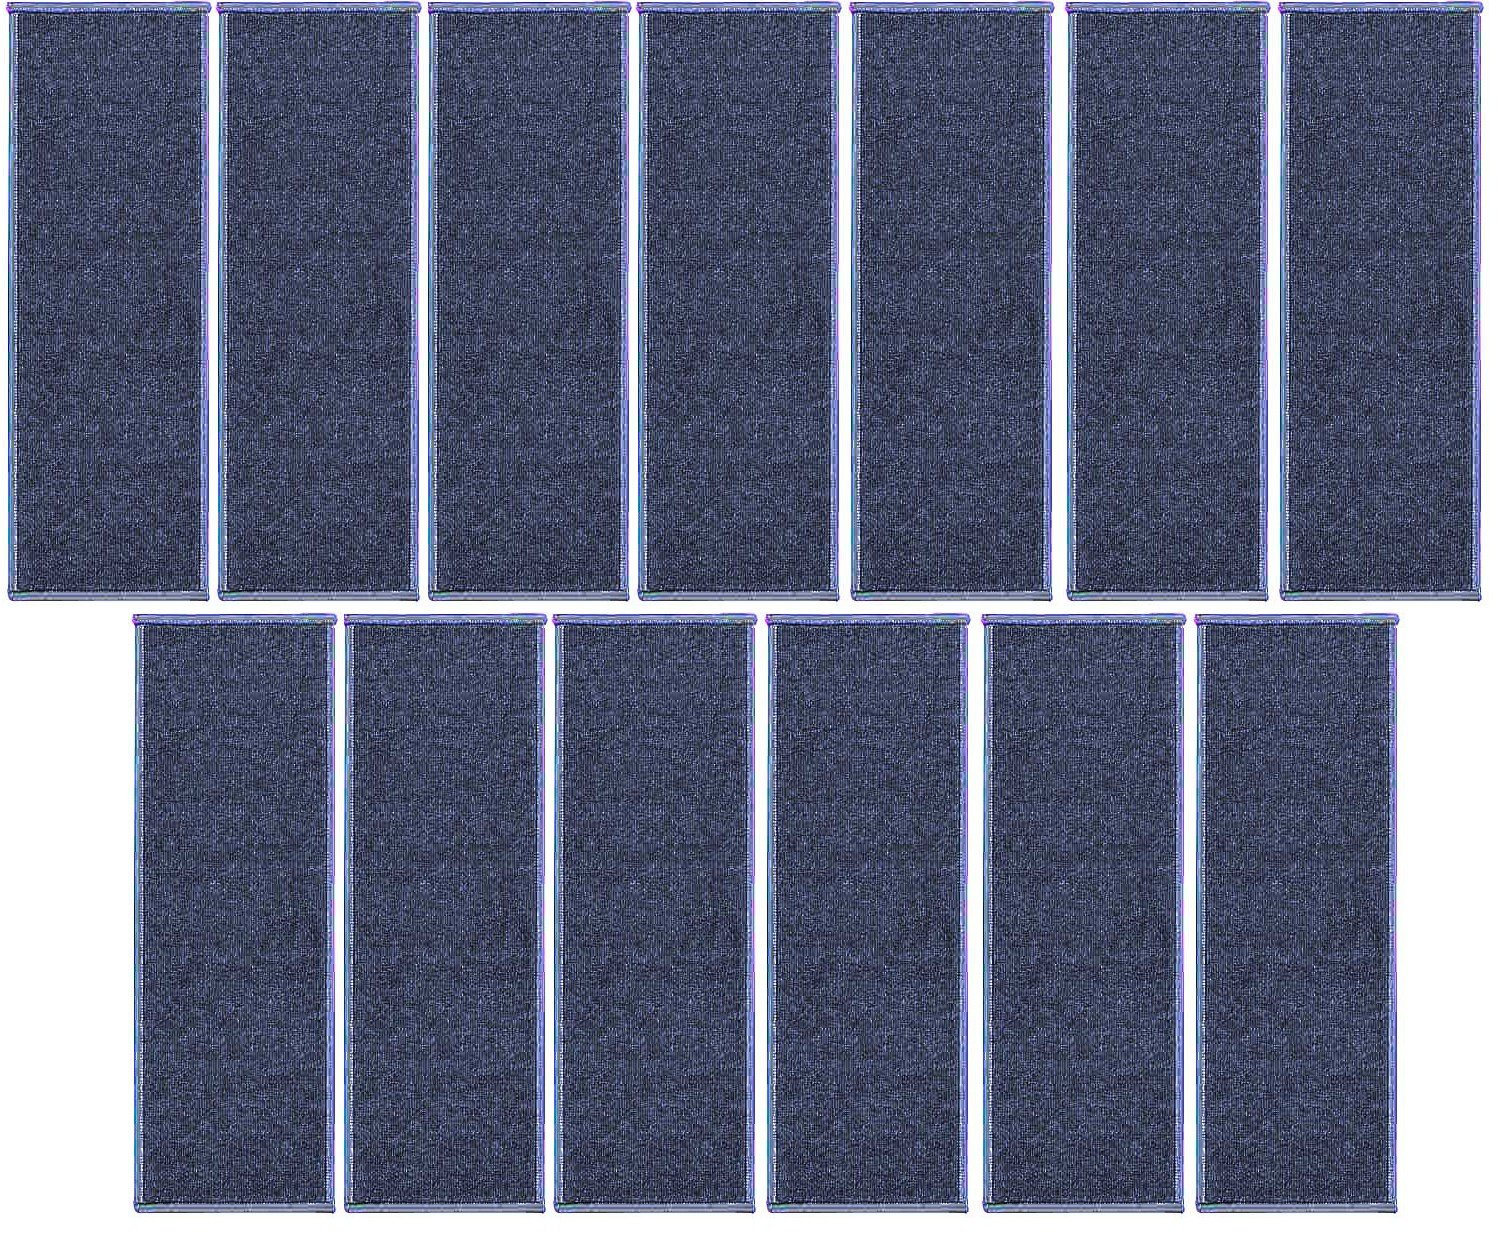 Ambiant Indoor Outdoor StairThreads Violet 9'' x 30'' (set of 13) - Area Rug